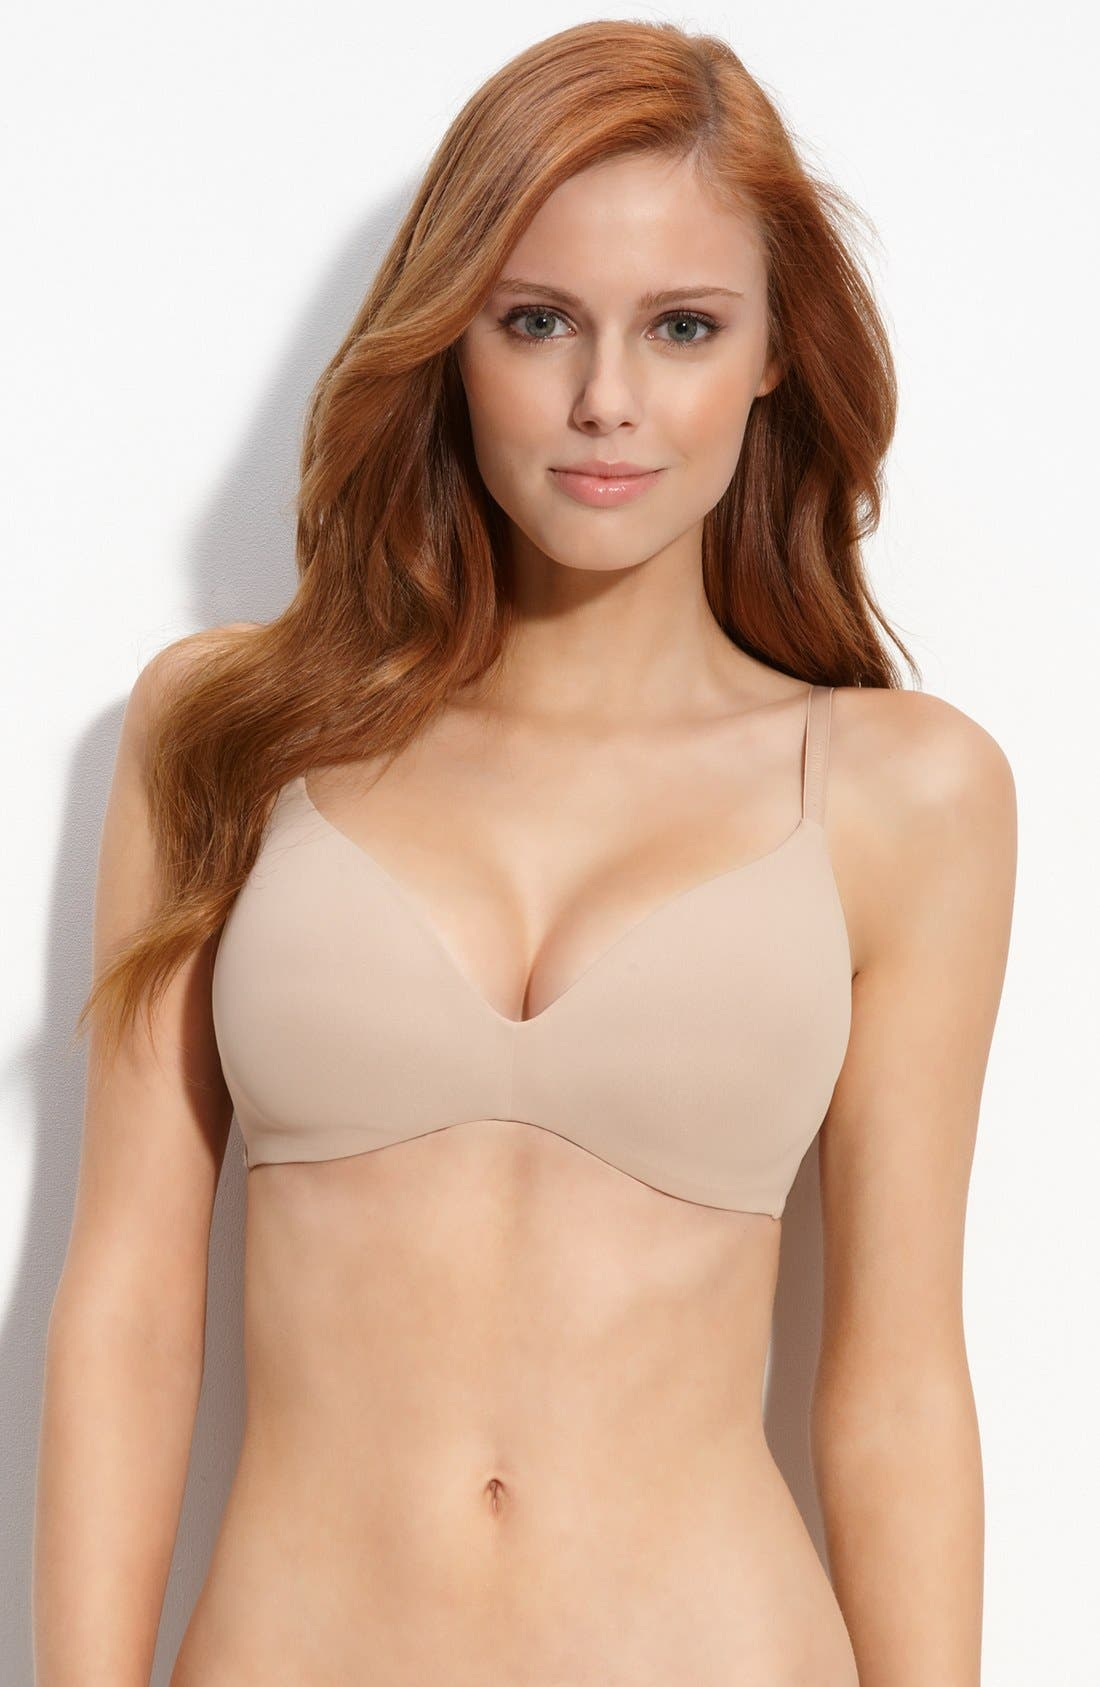 Alternate Image 1 Selected - Calvin Klein 'F2781' Soft Cup Contour Bra